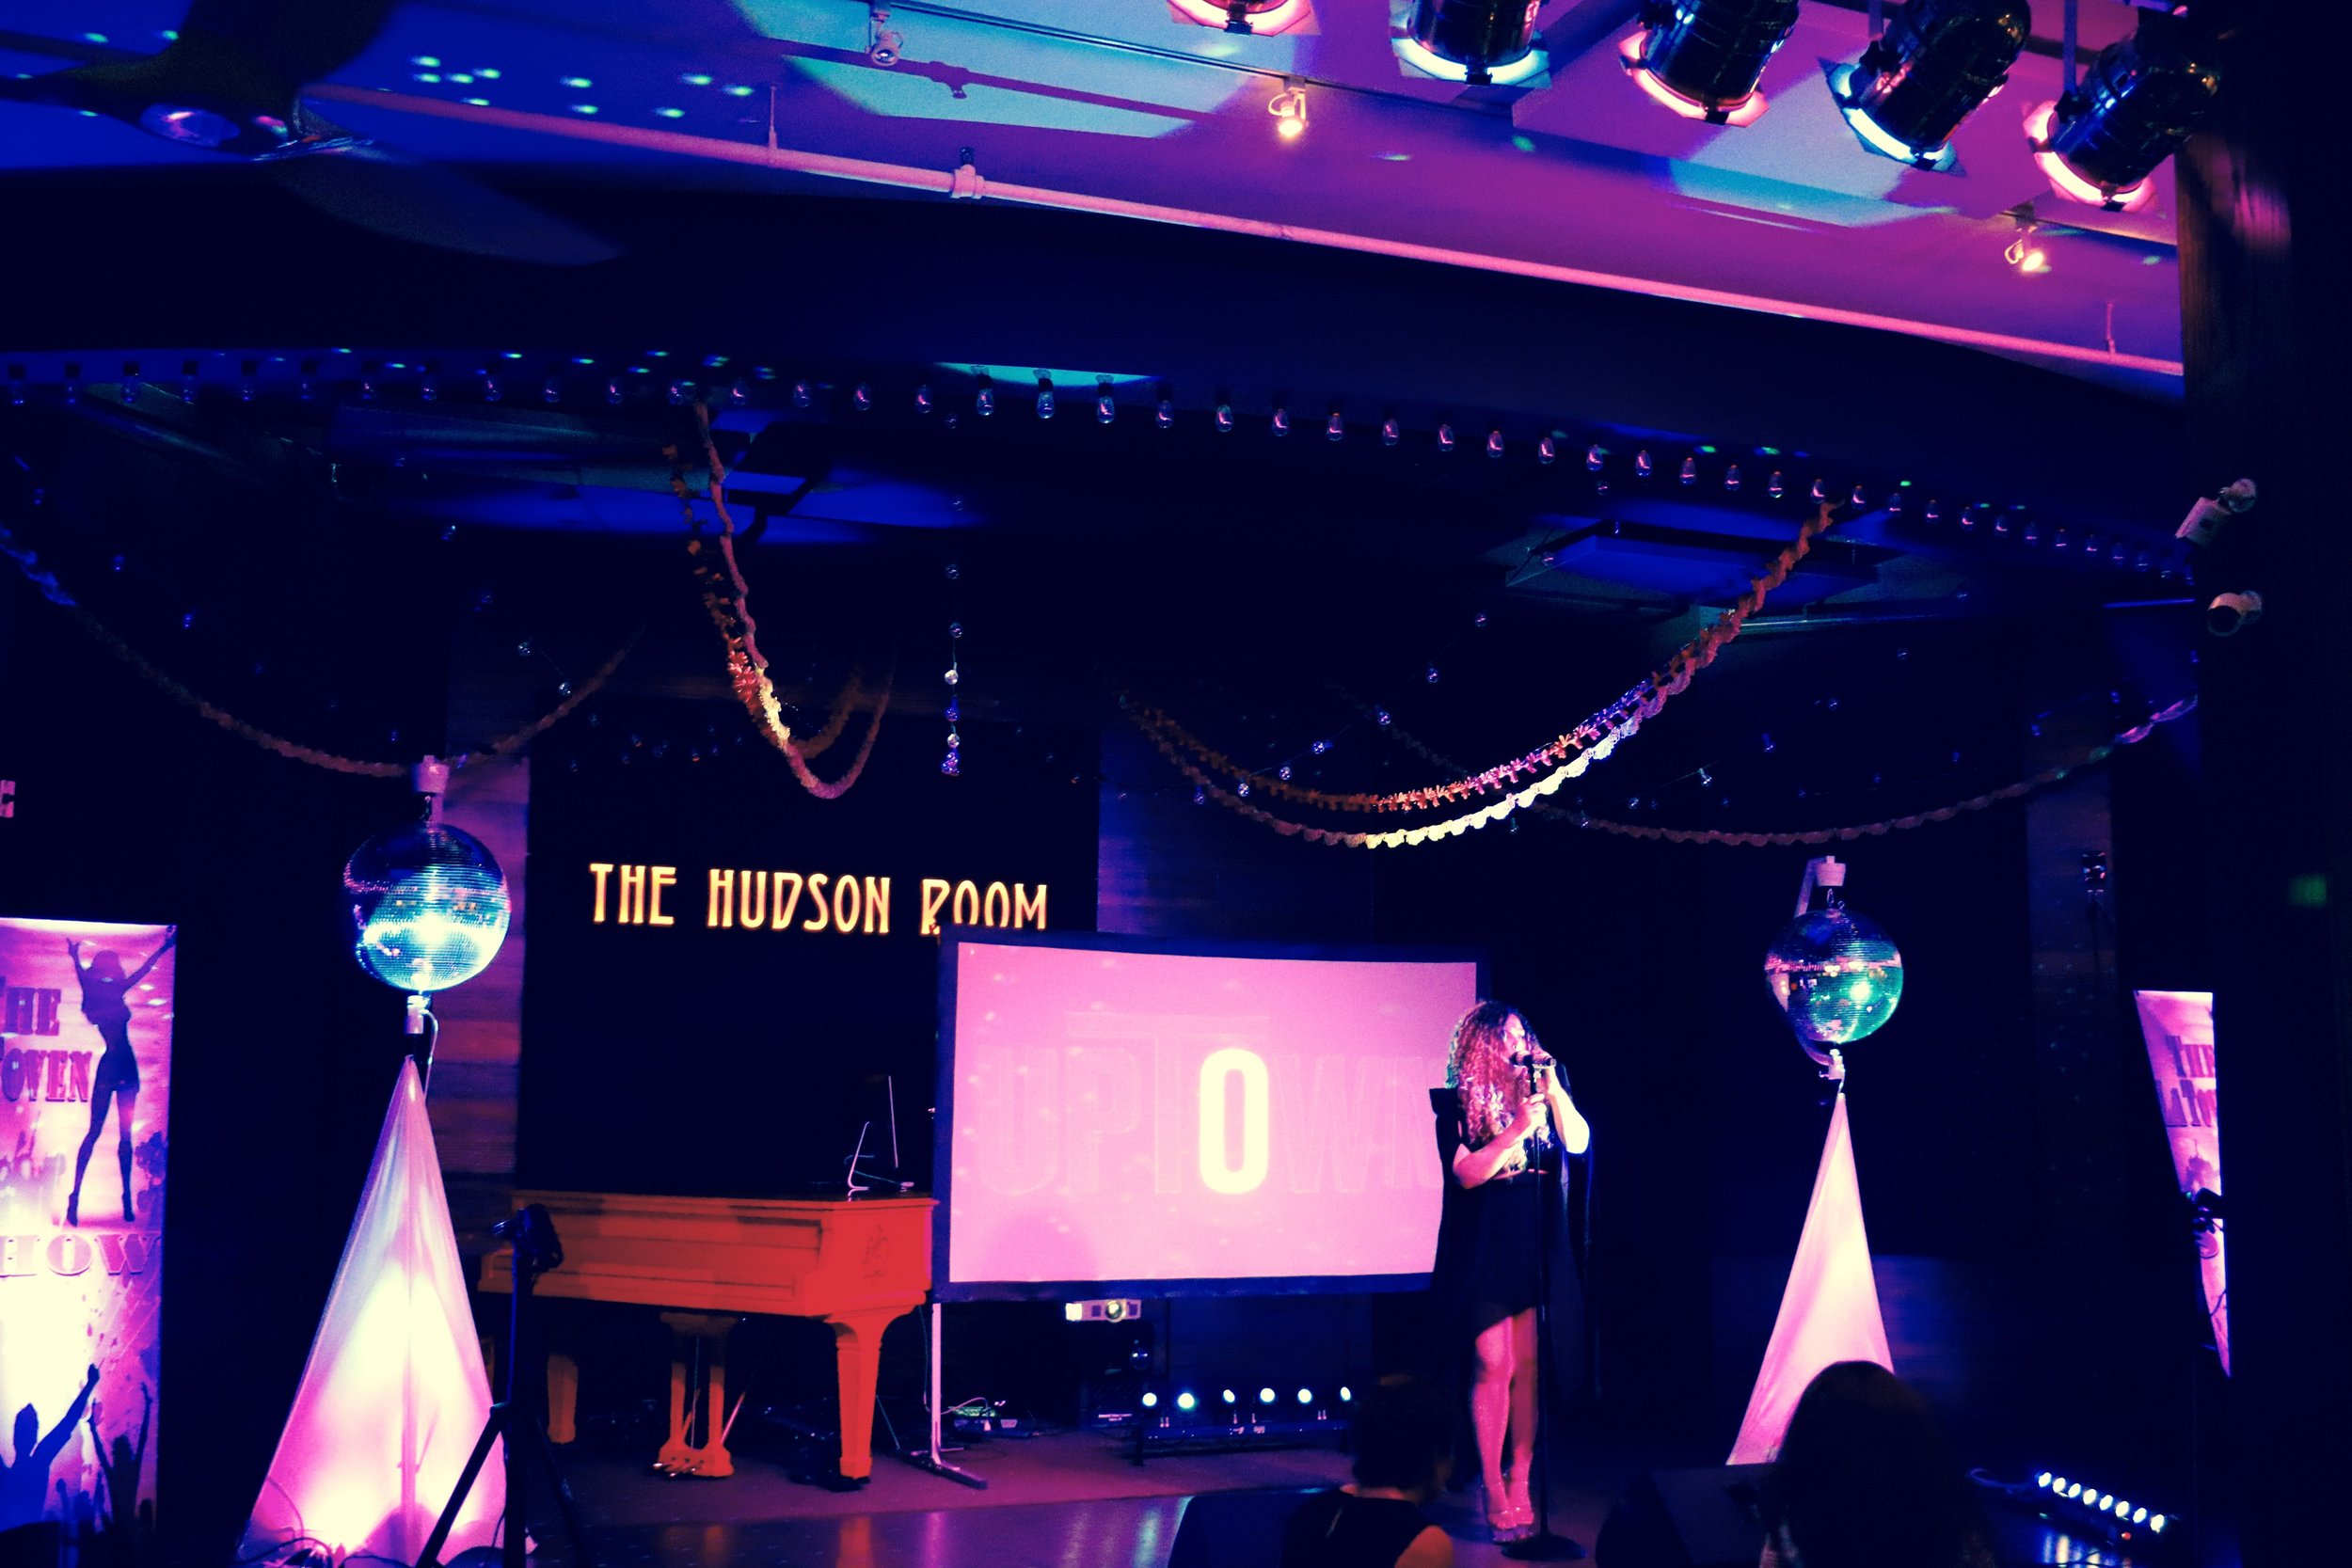 Our stunning Disco Glam Theme at The Hudson Room